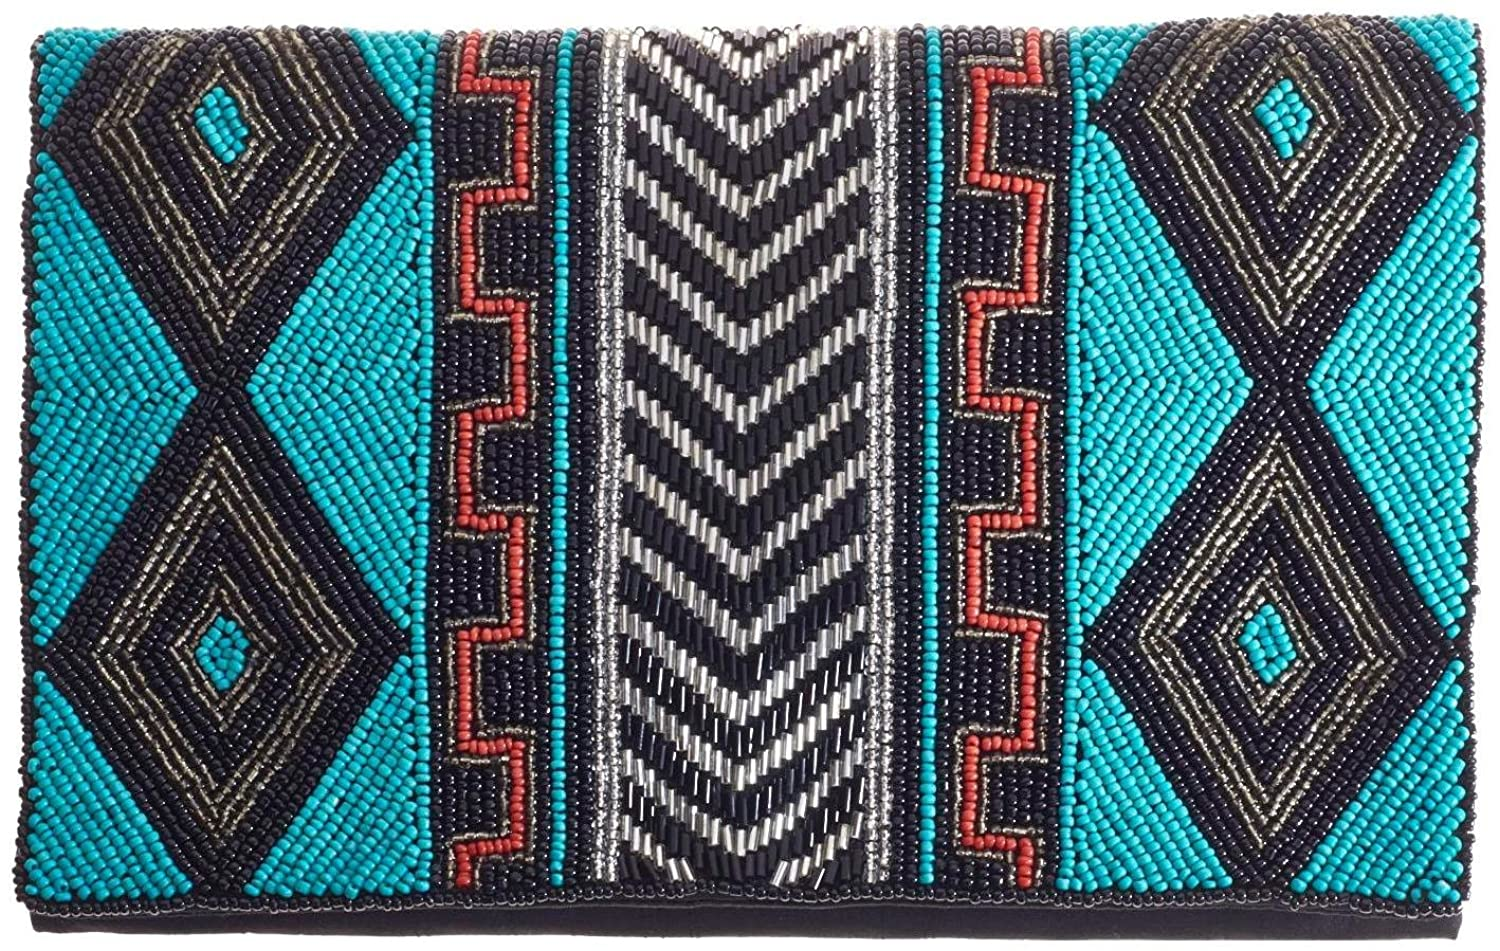 From St Xavier Akua Clutch, Aqua